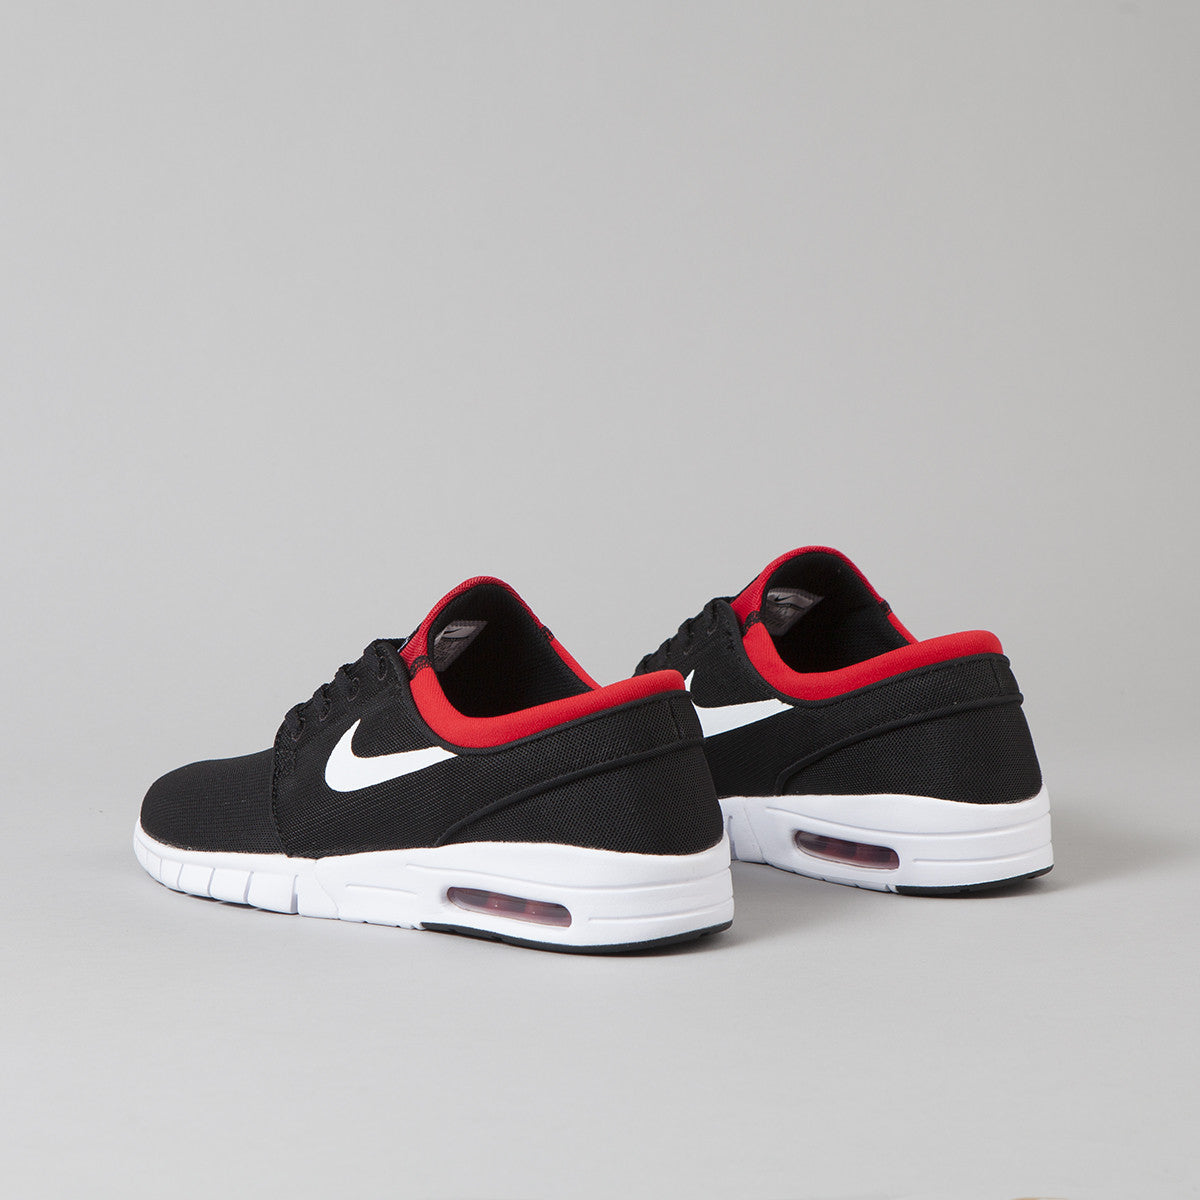 nike sb stefan janoski max shoes black white university red flatspot. Black Bedroom Furniture Sets. Home Design Ideas